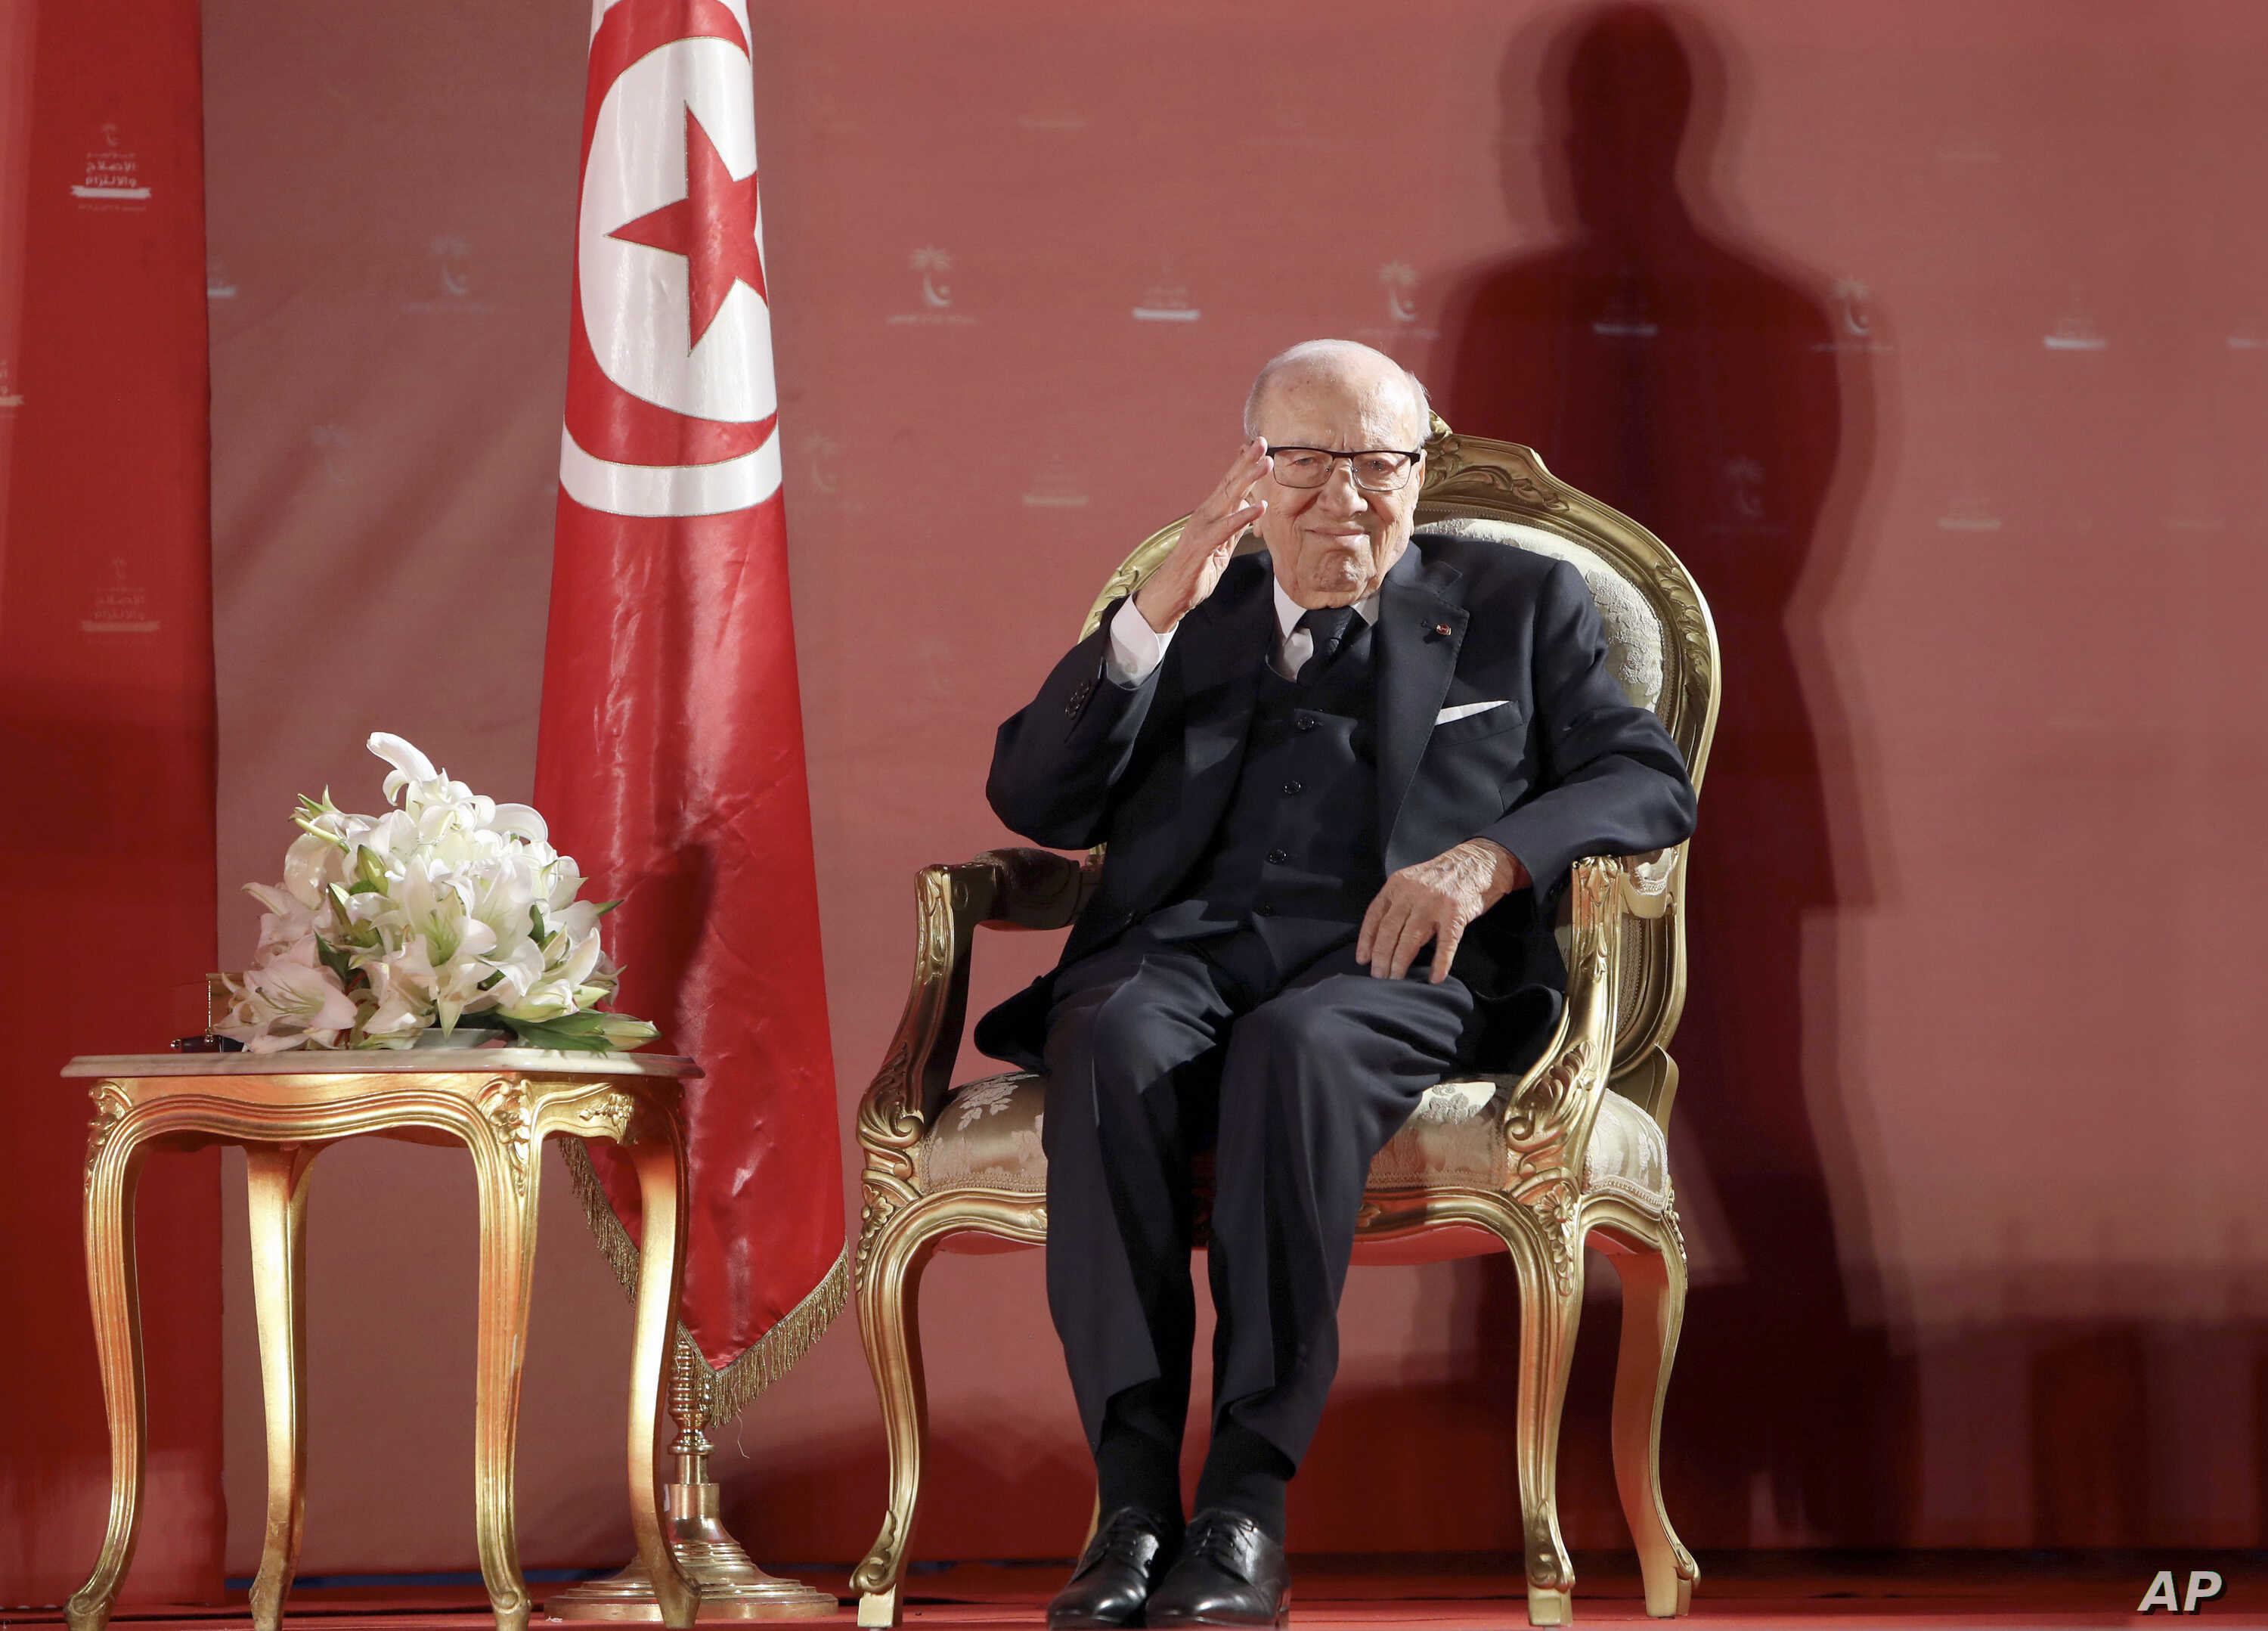 Tunisian president hospitalised 'in severe health crisis', Africa News & Top Stories